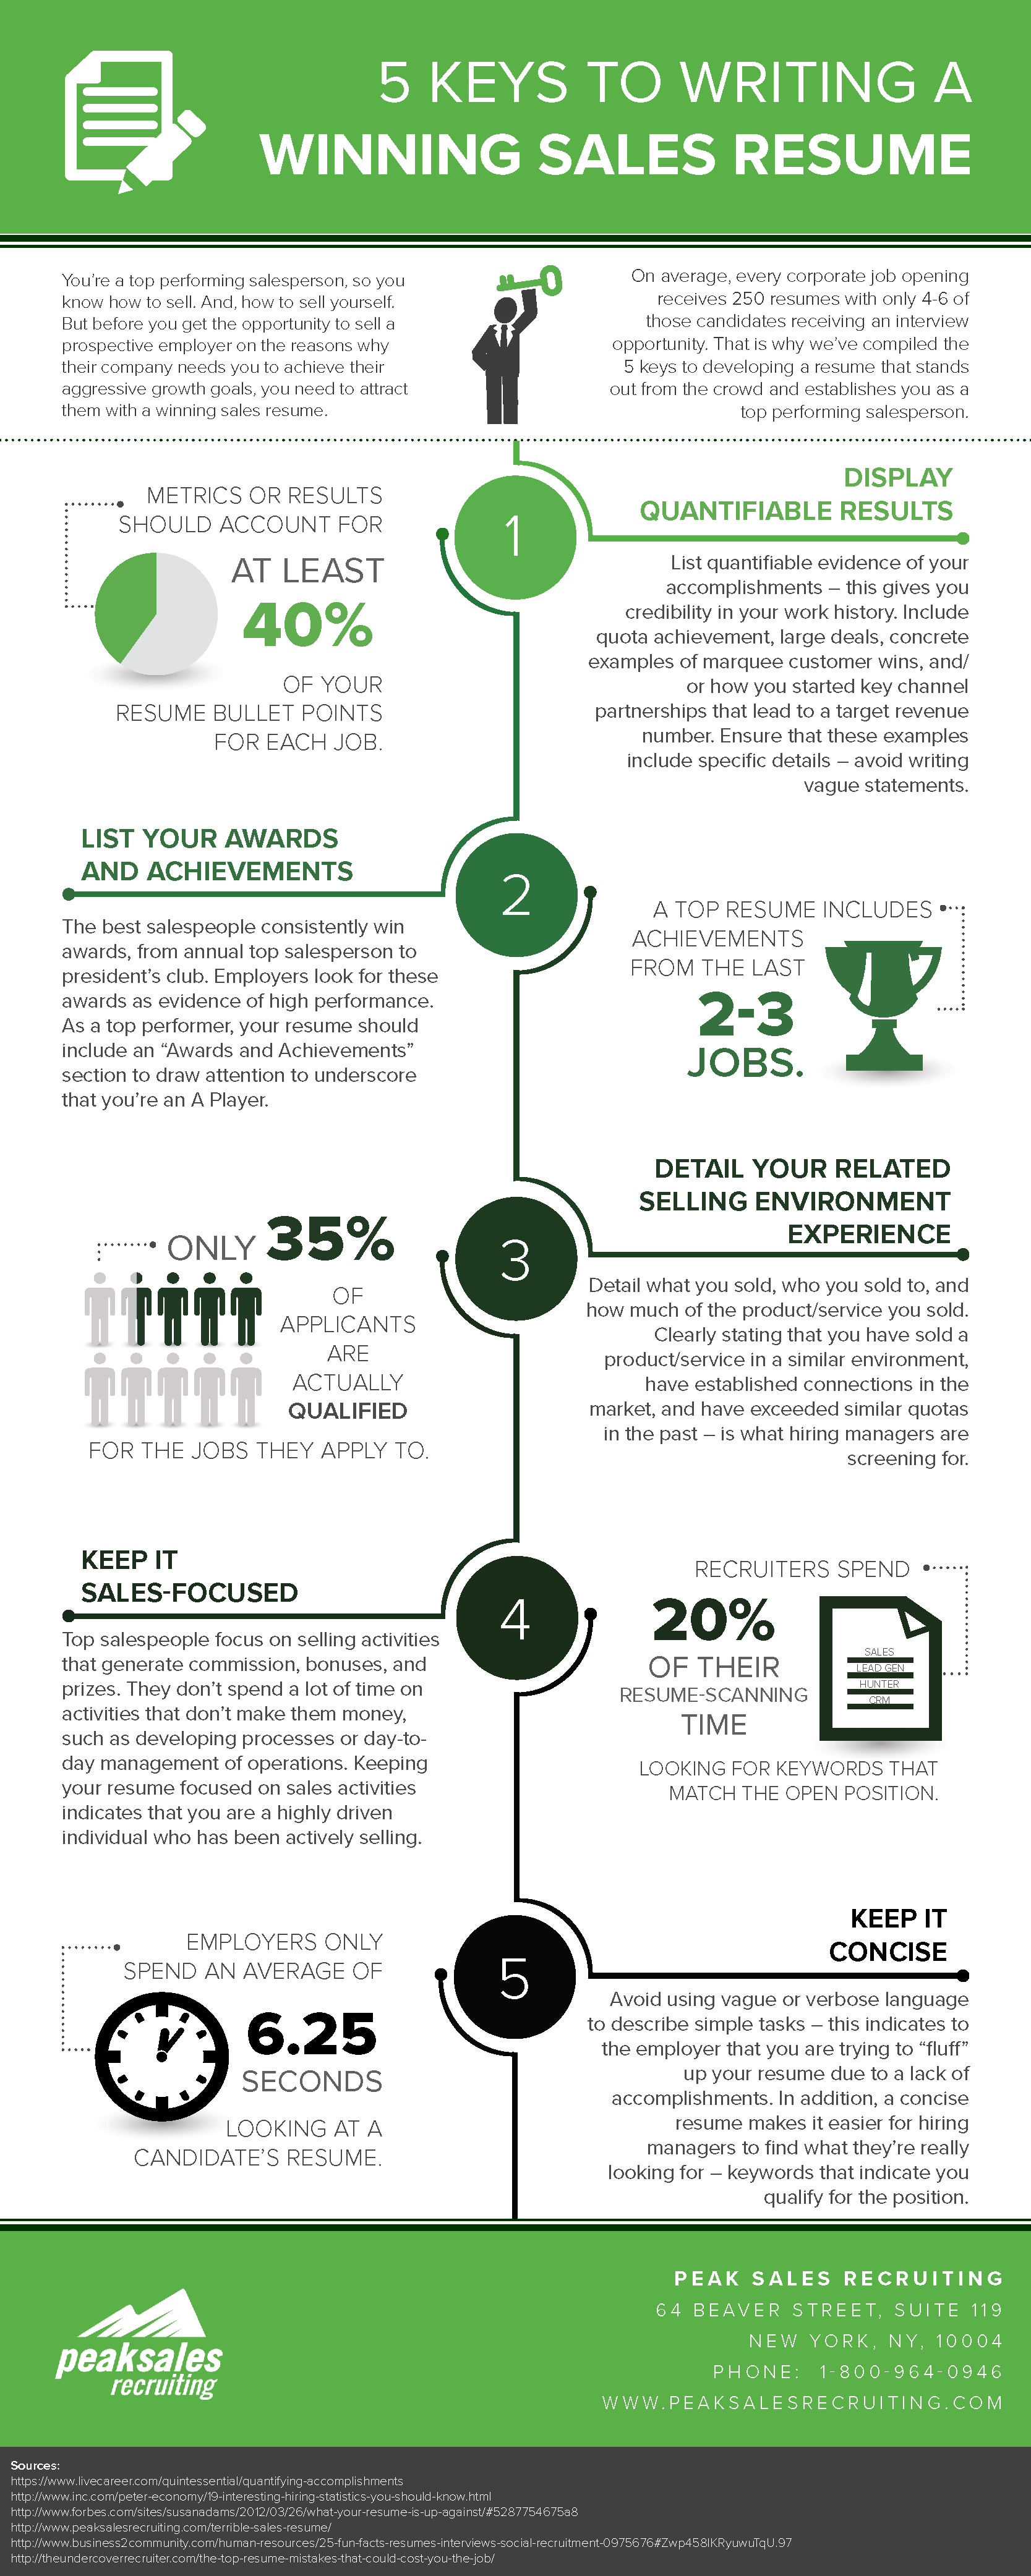 5 Keys to Writing a Winning Sales Resume [Infographic